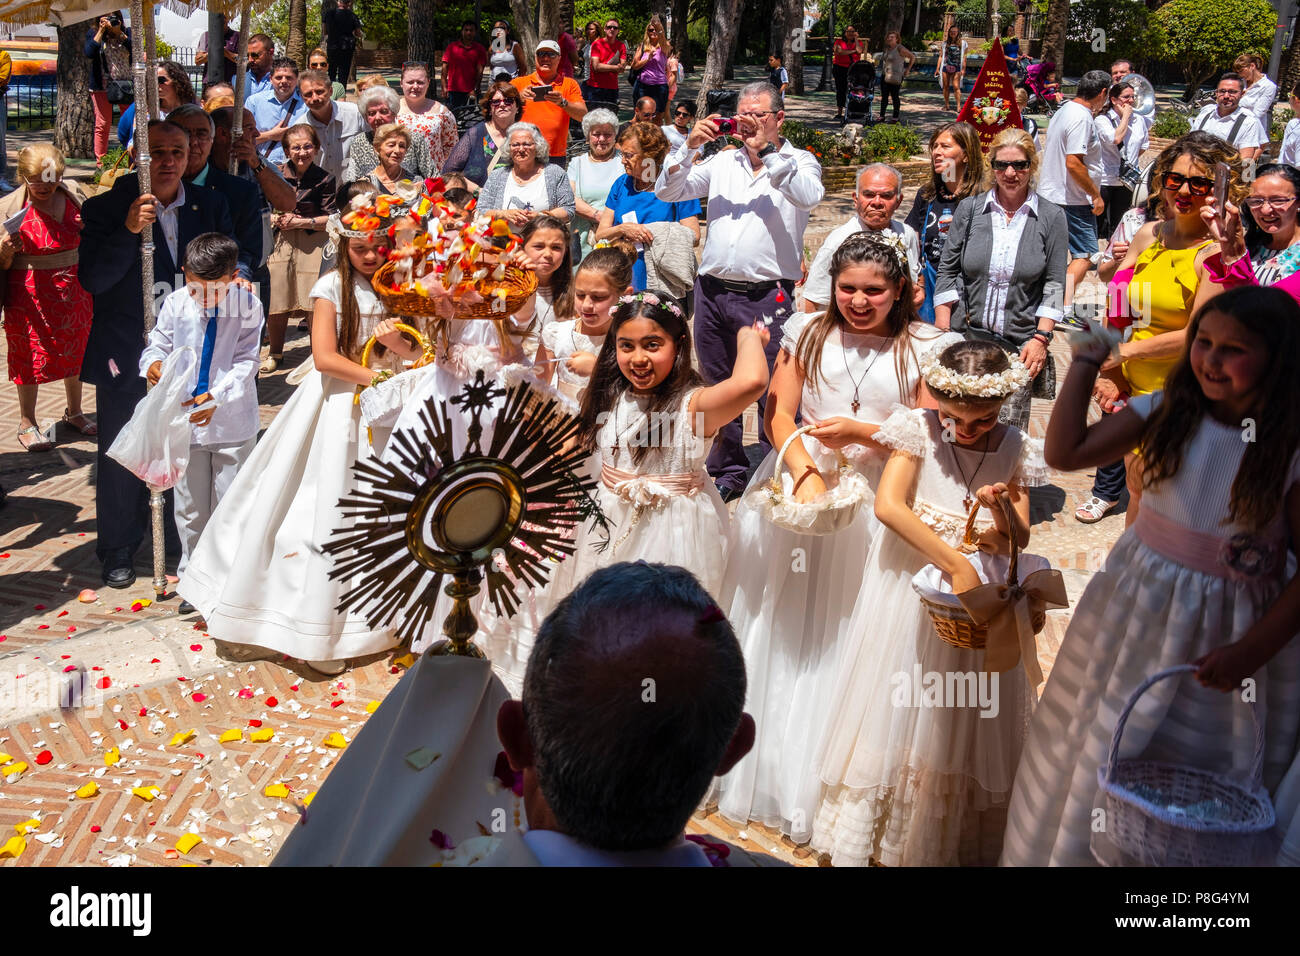 Celebration of Corpus Christi procession, typical white village of Mijas. Costa del Sol, Málaga province. Andalusia, Southern Spain Europe - Stock Image